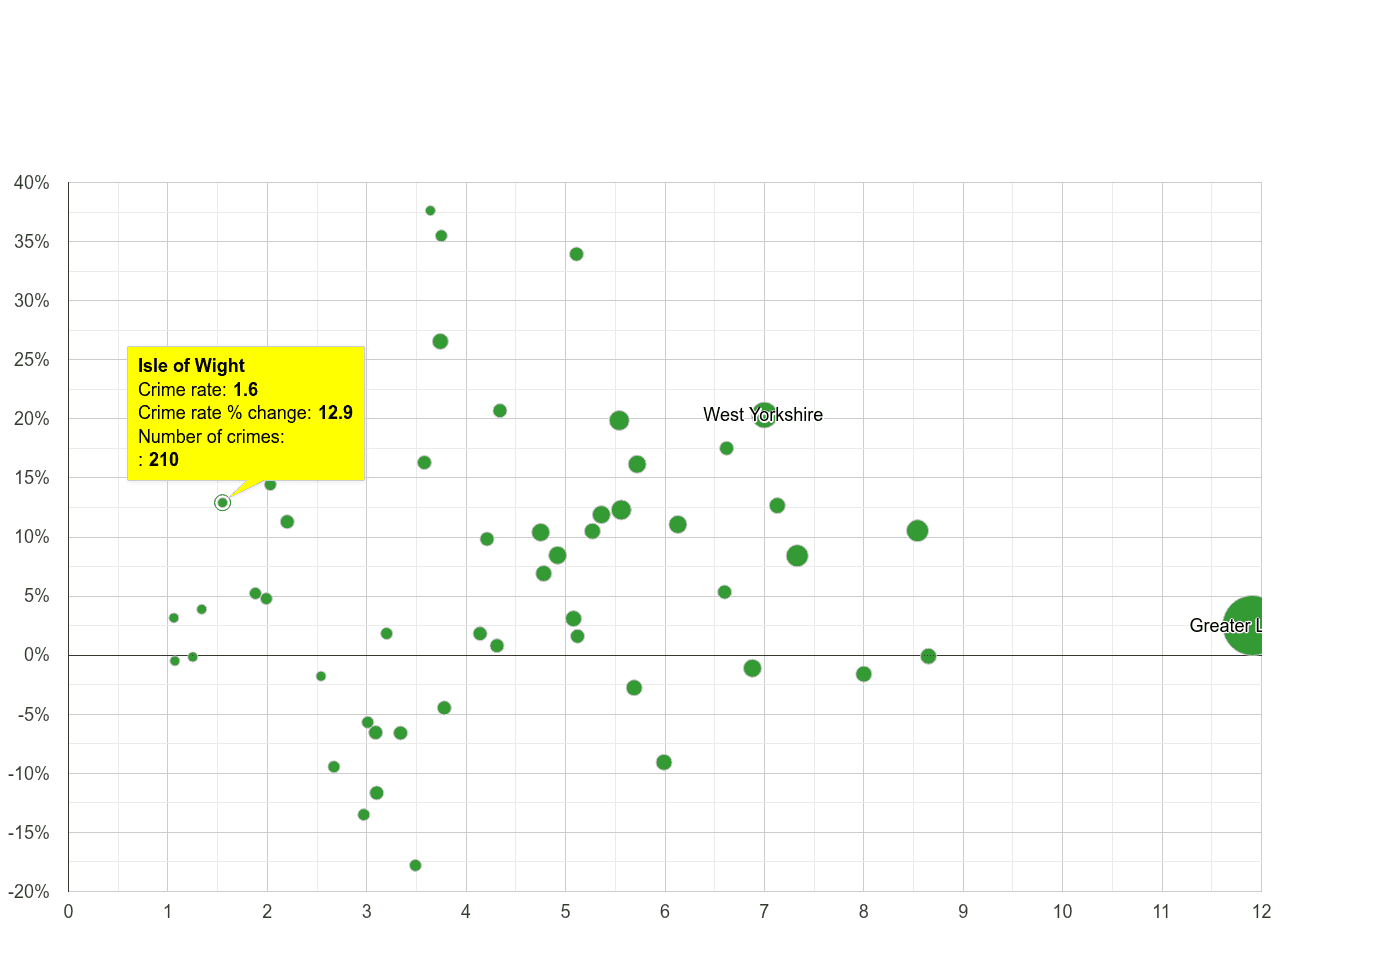 Isle of Wight vehicle crime rate compared to other counties